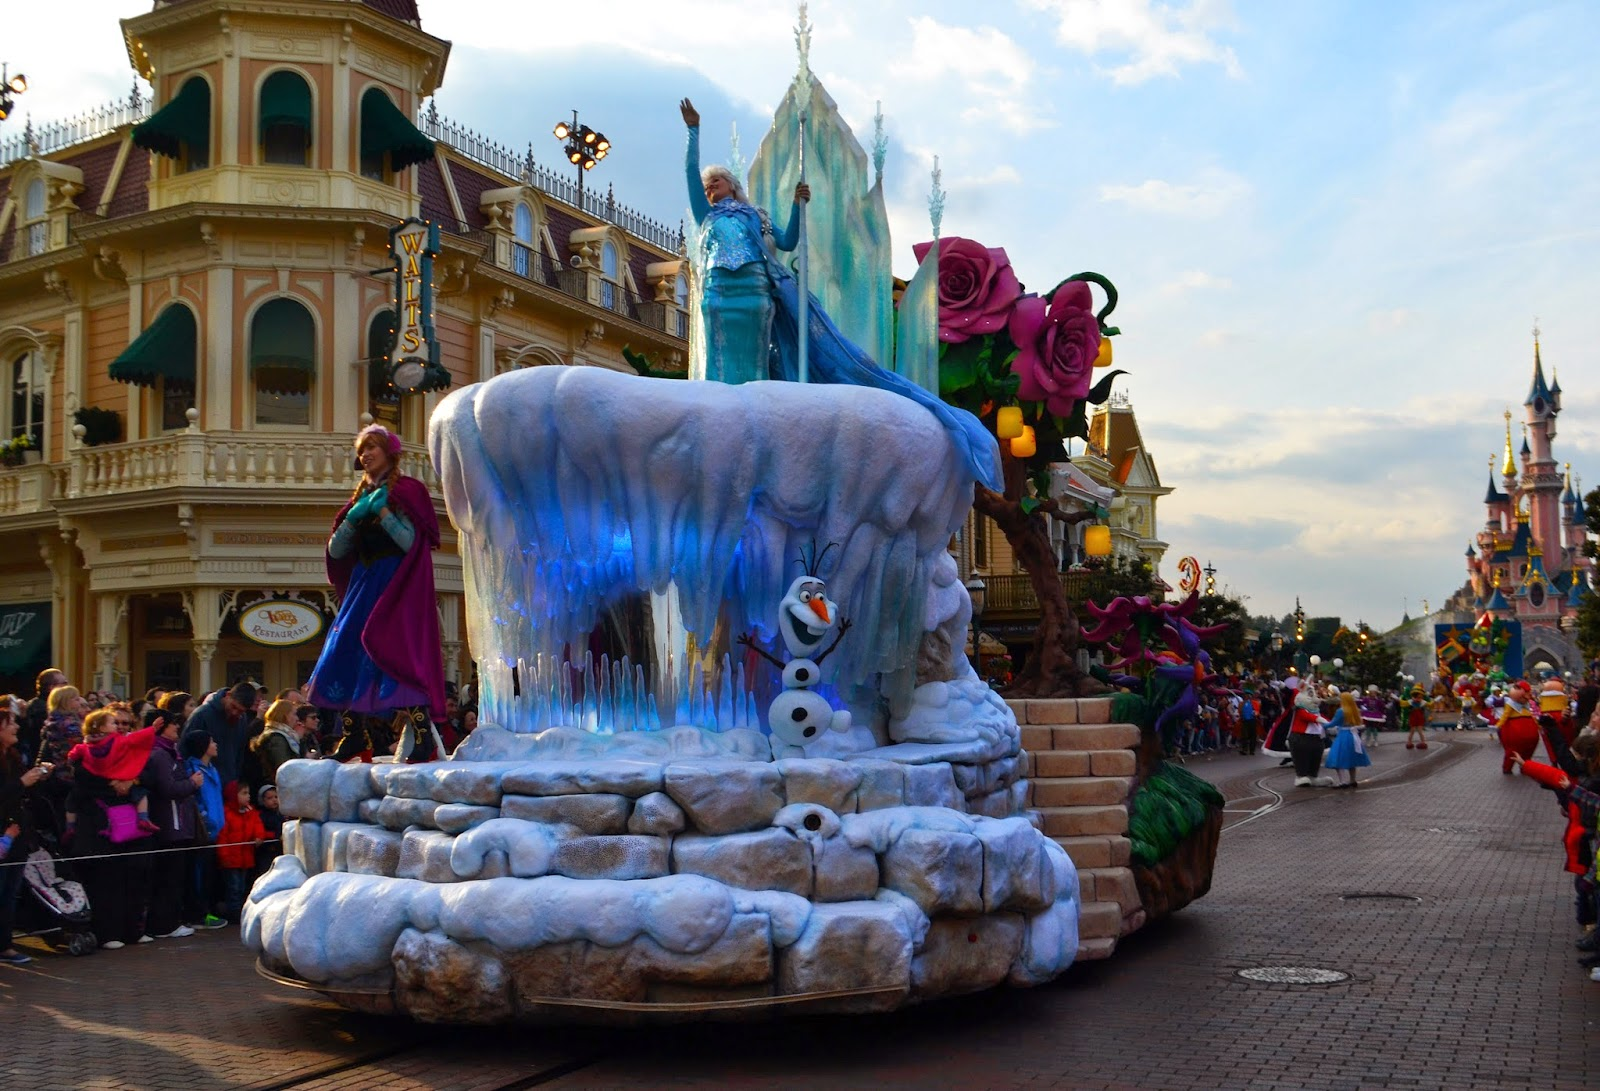 the frozen float. Anna Elsa and Olaf can be seen riding this float